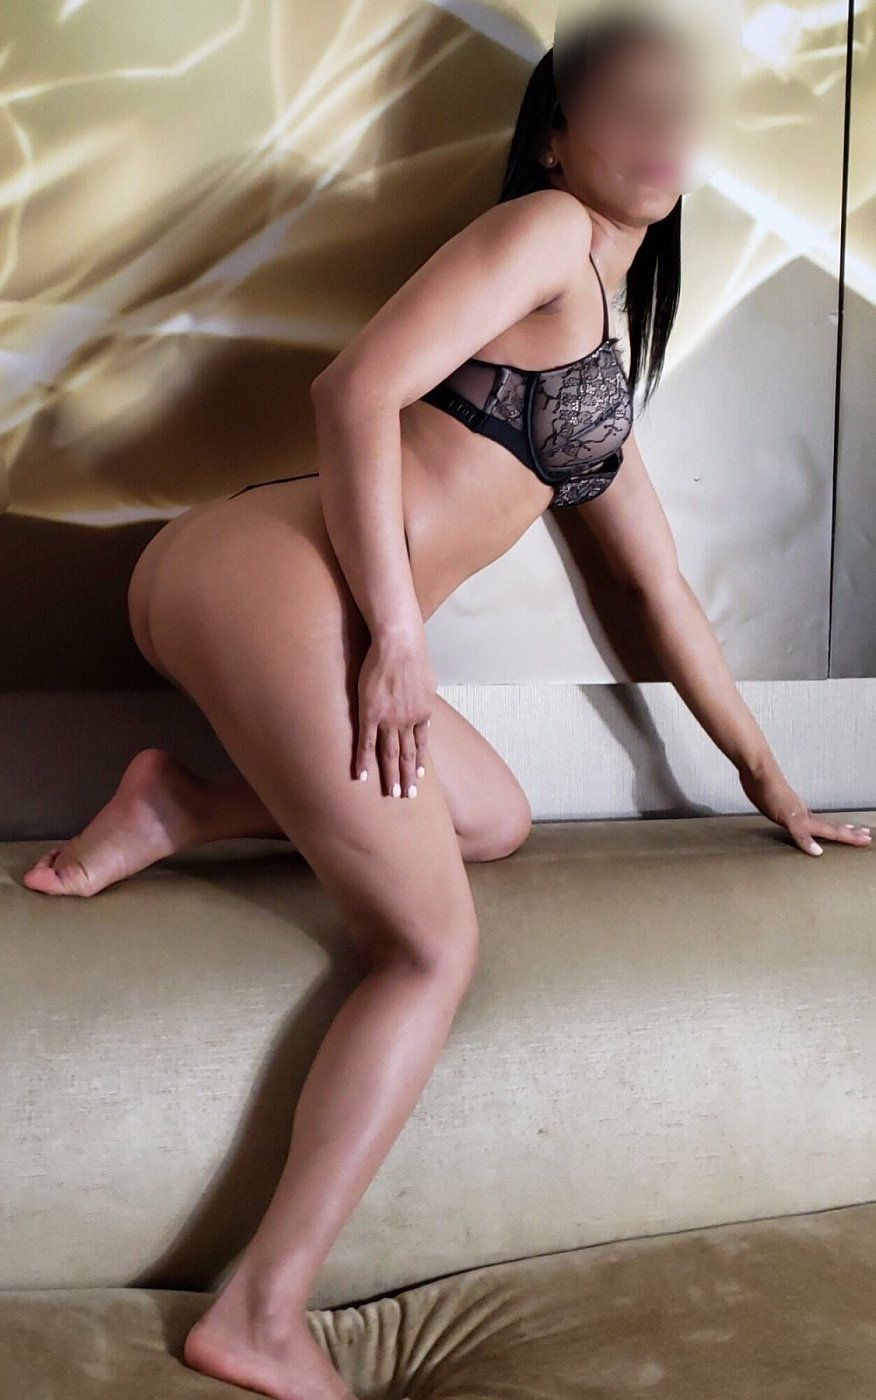 call girl in Timberwood Park TX and tantra massage